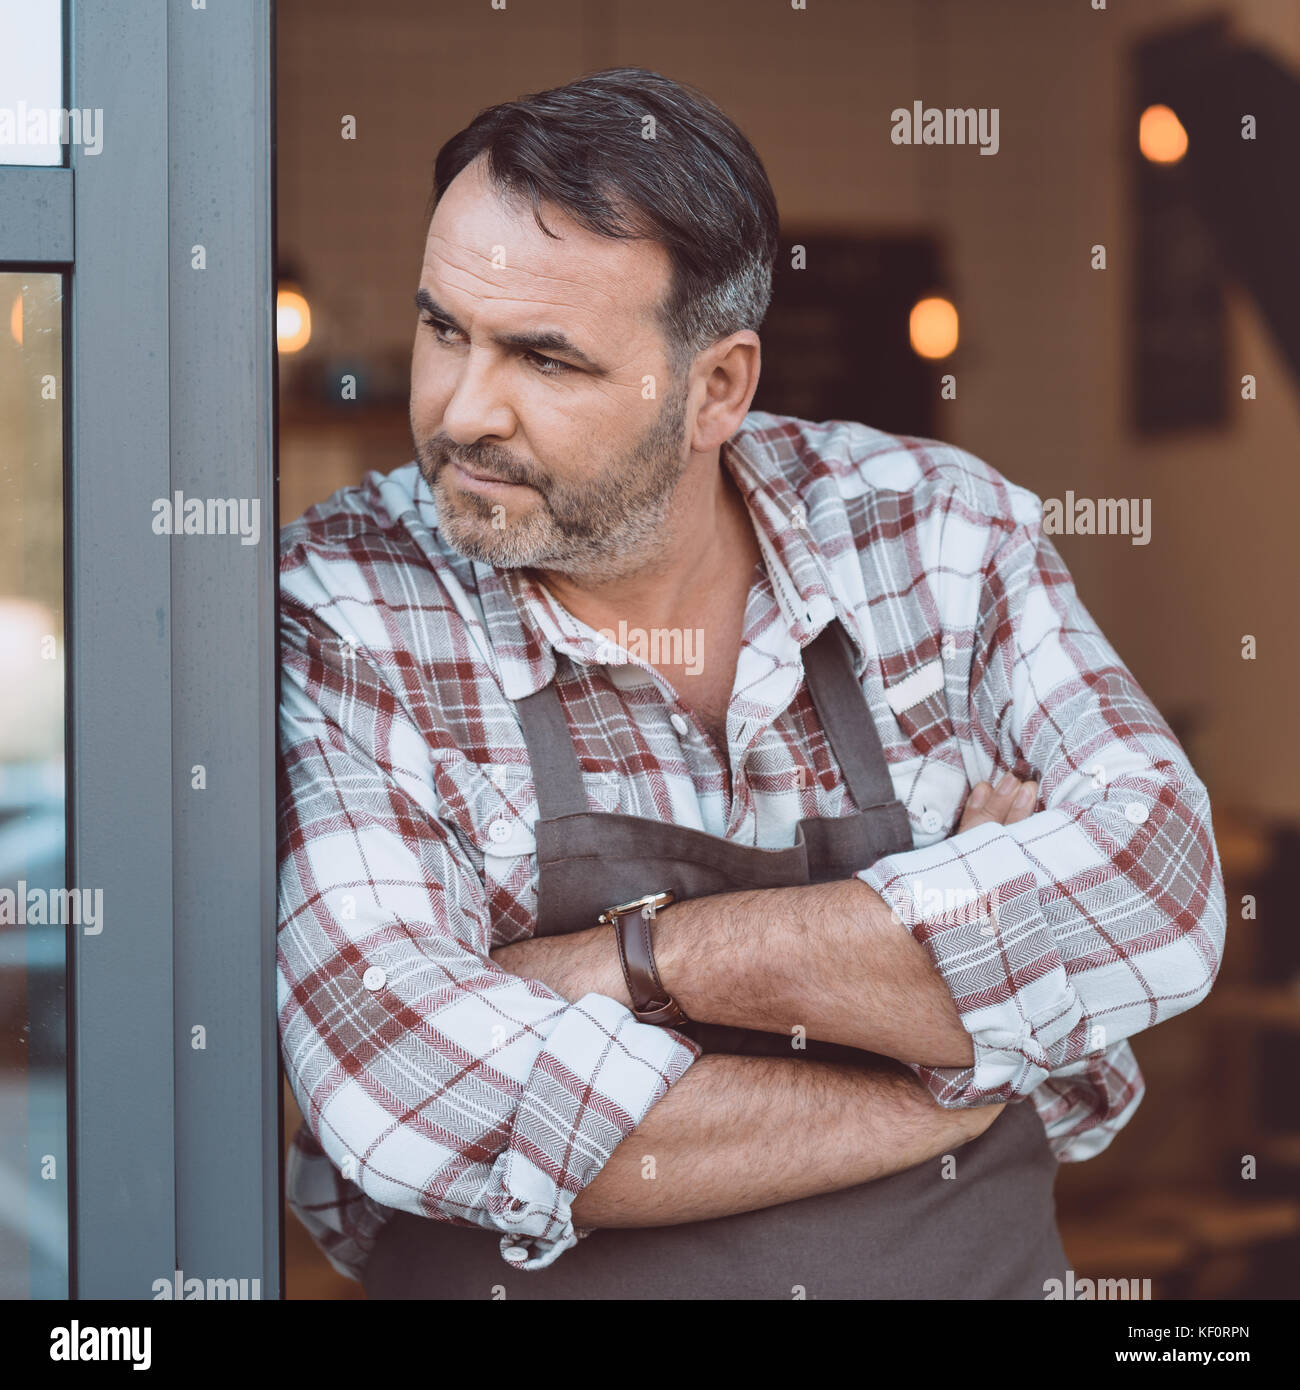 bartender leaning on entrance of cafe - Stock Image